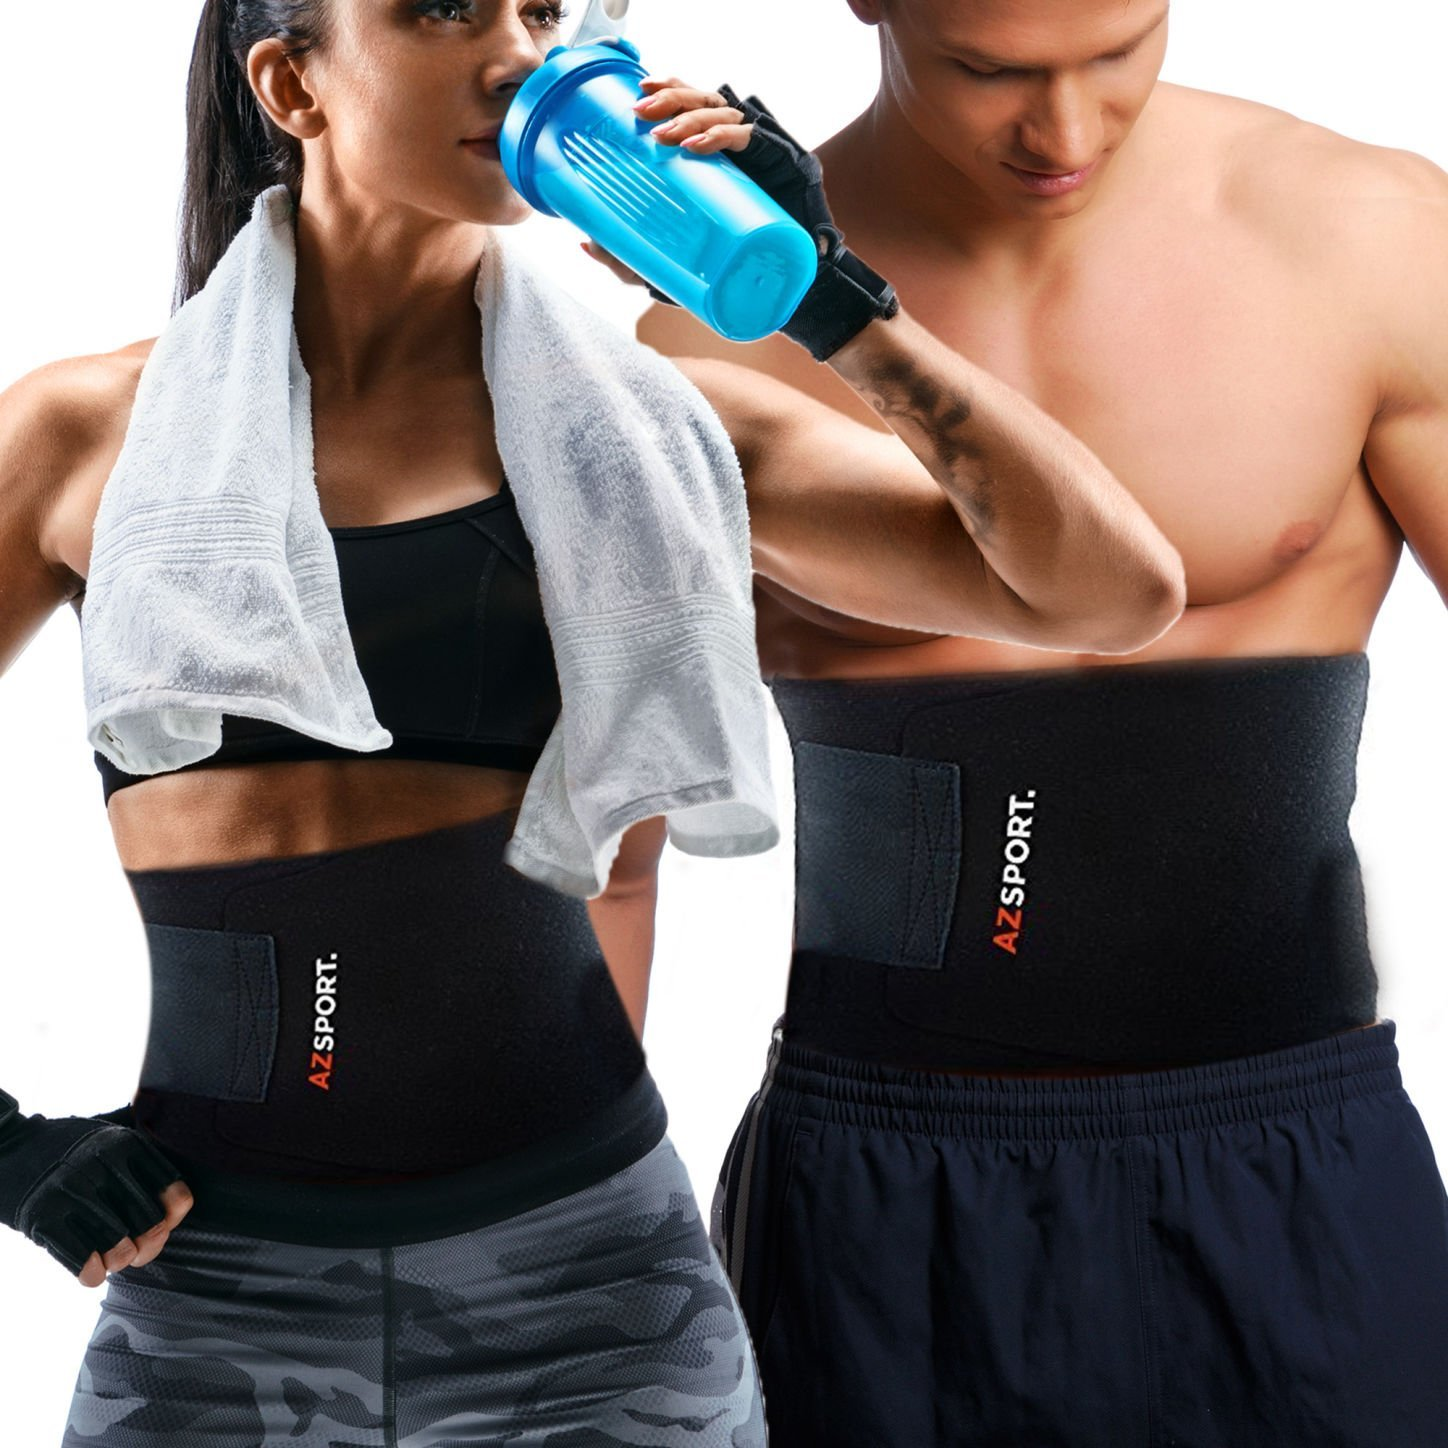 d119cd582a Best Waist Trimmer Belt Reviews – March. 2019 – Buyer s Guide